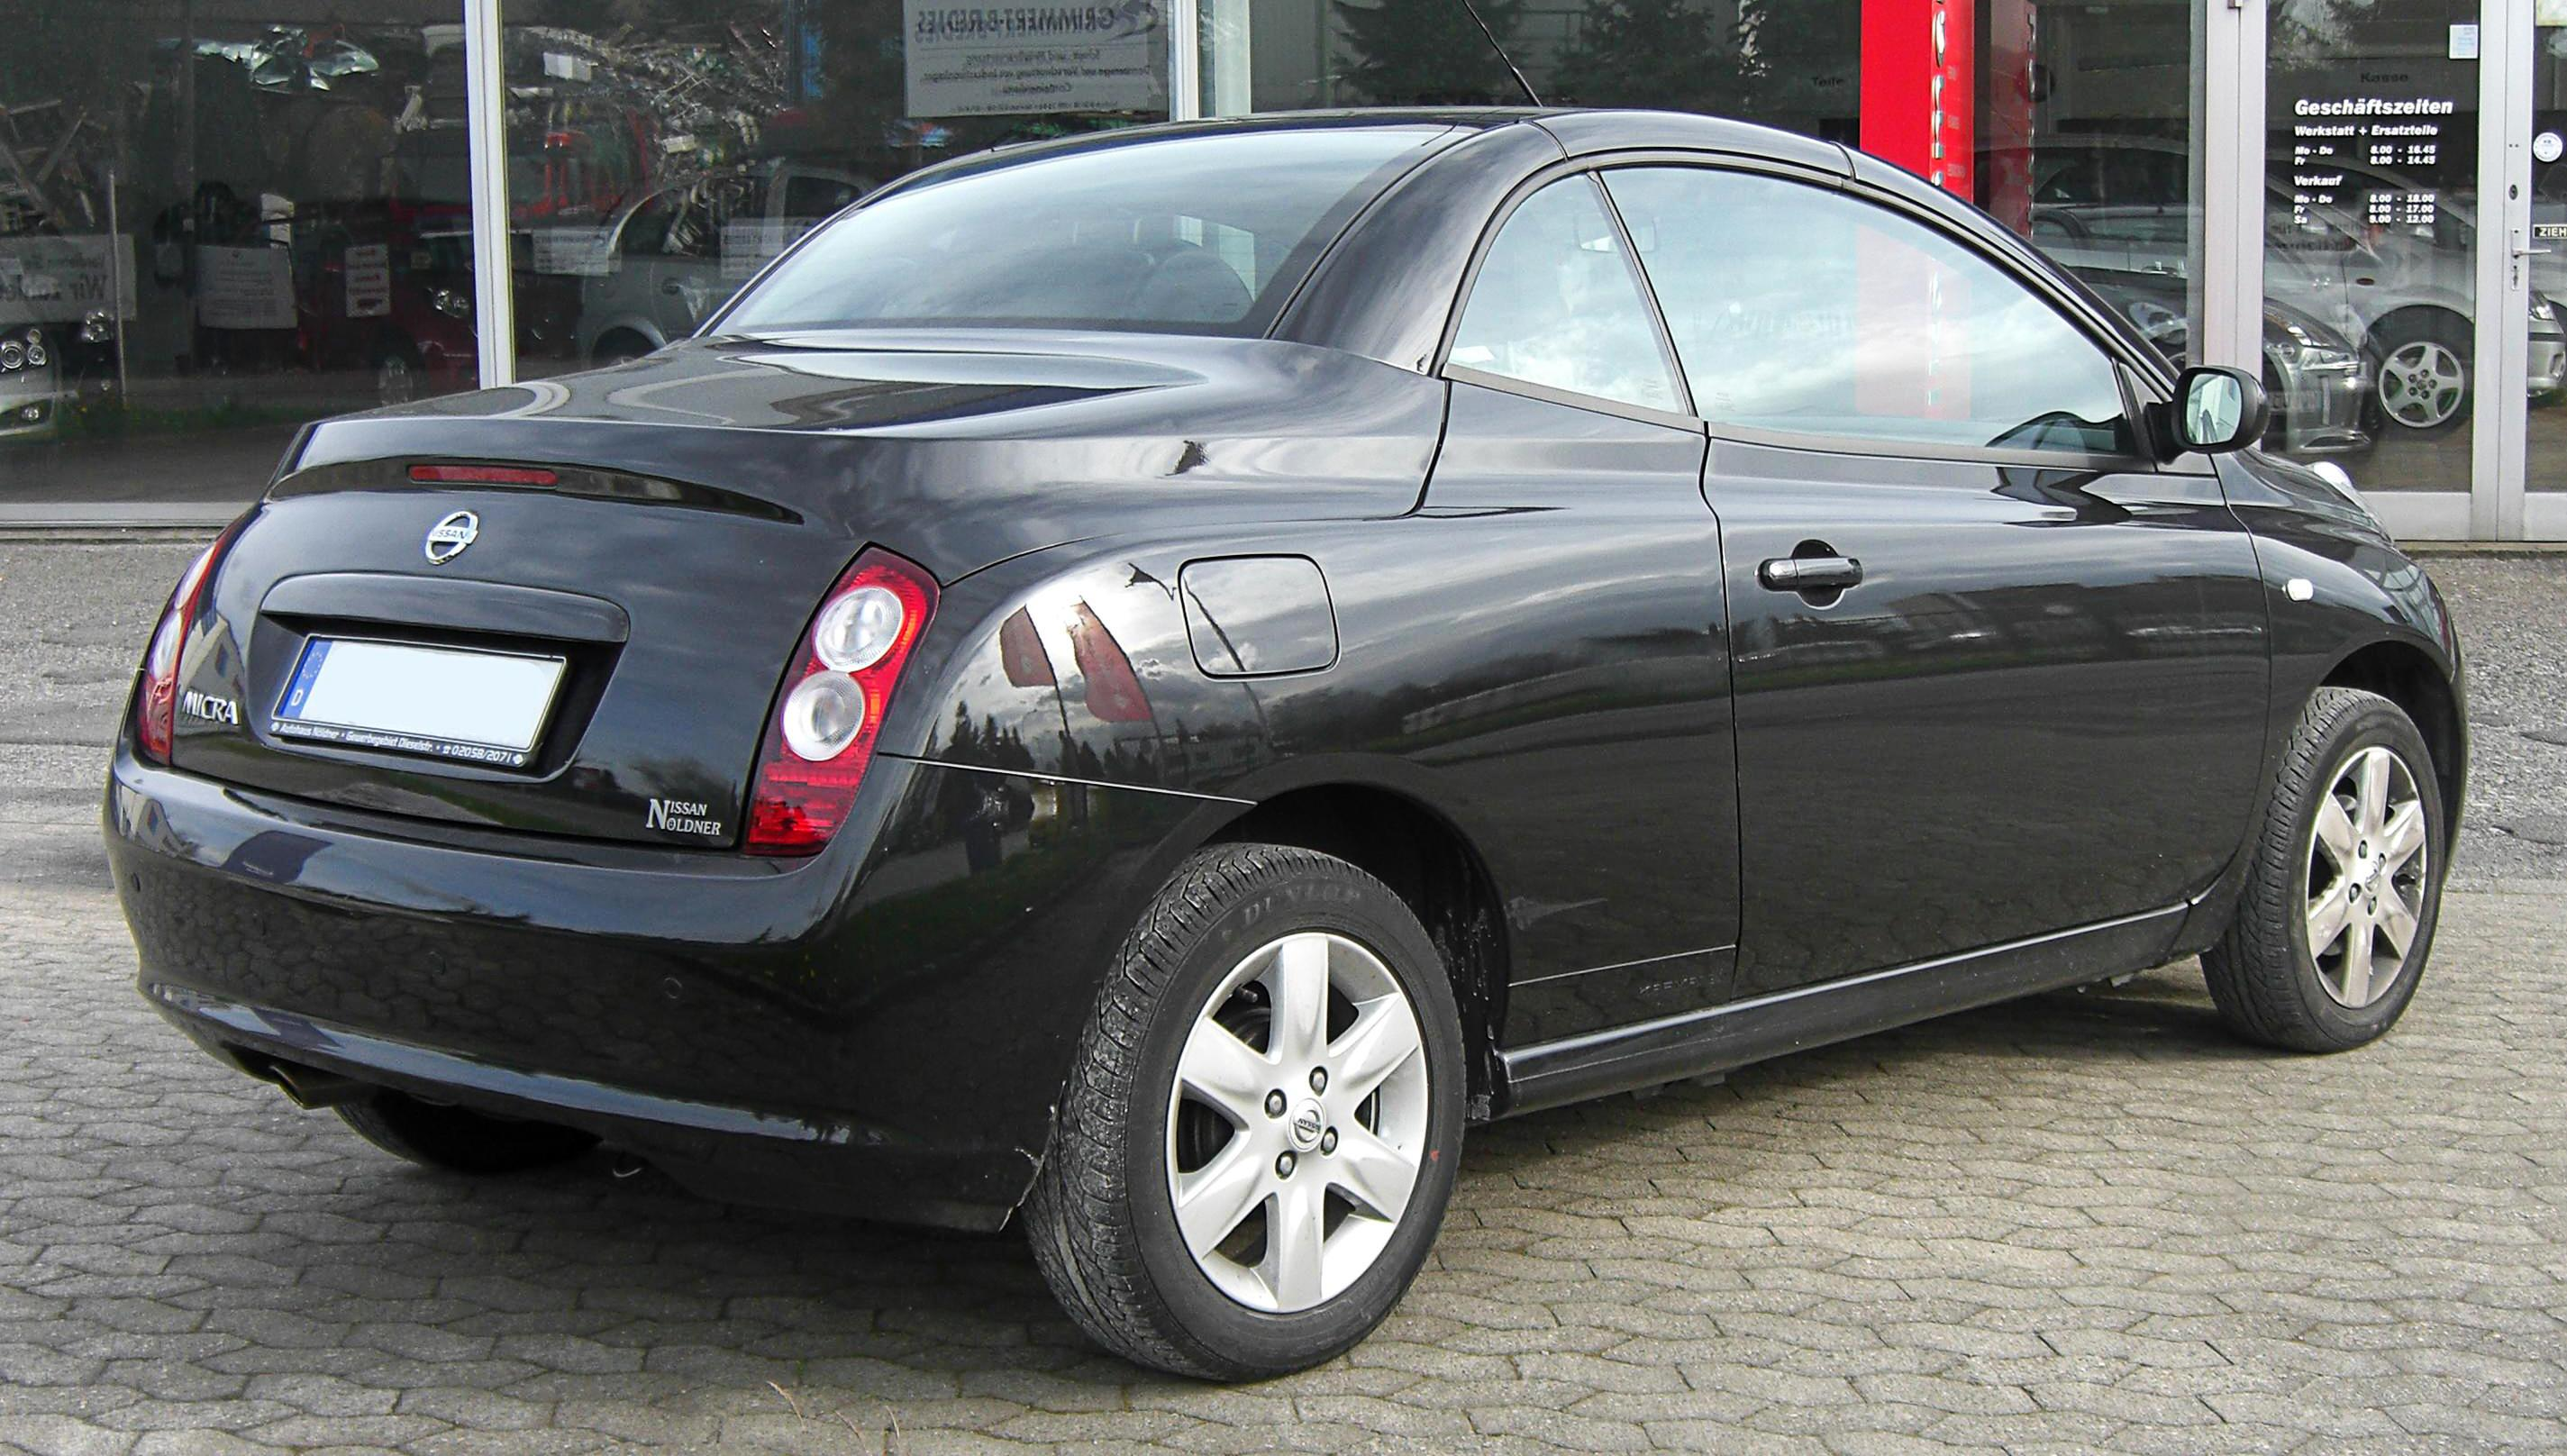 nissan micra coupe cabriolet (k12c) 2008 #4